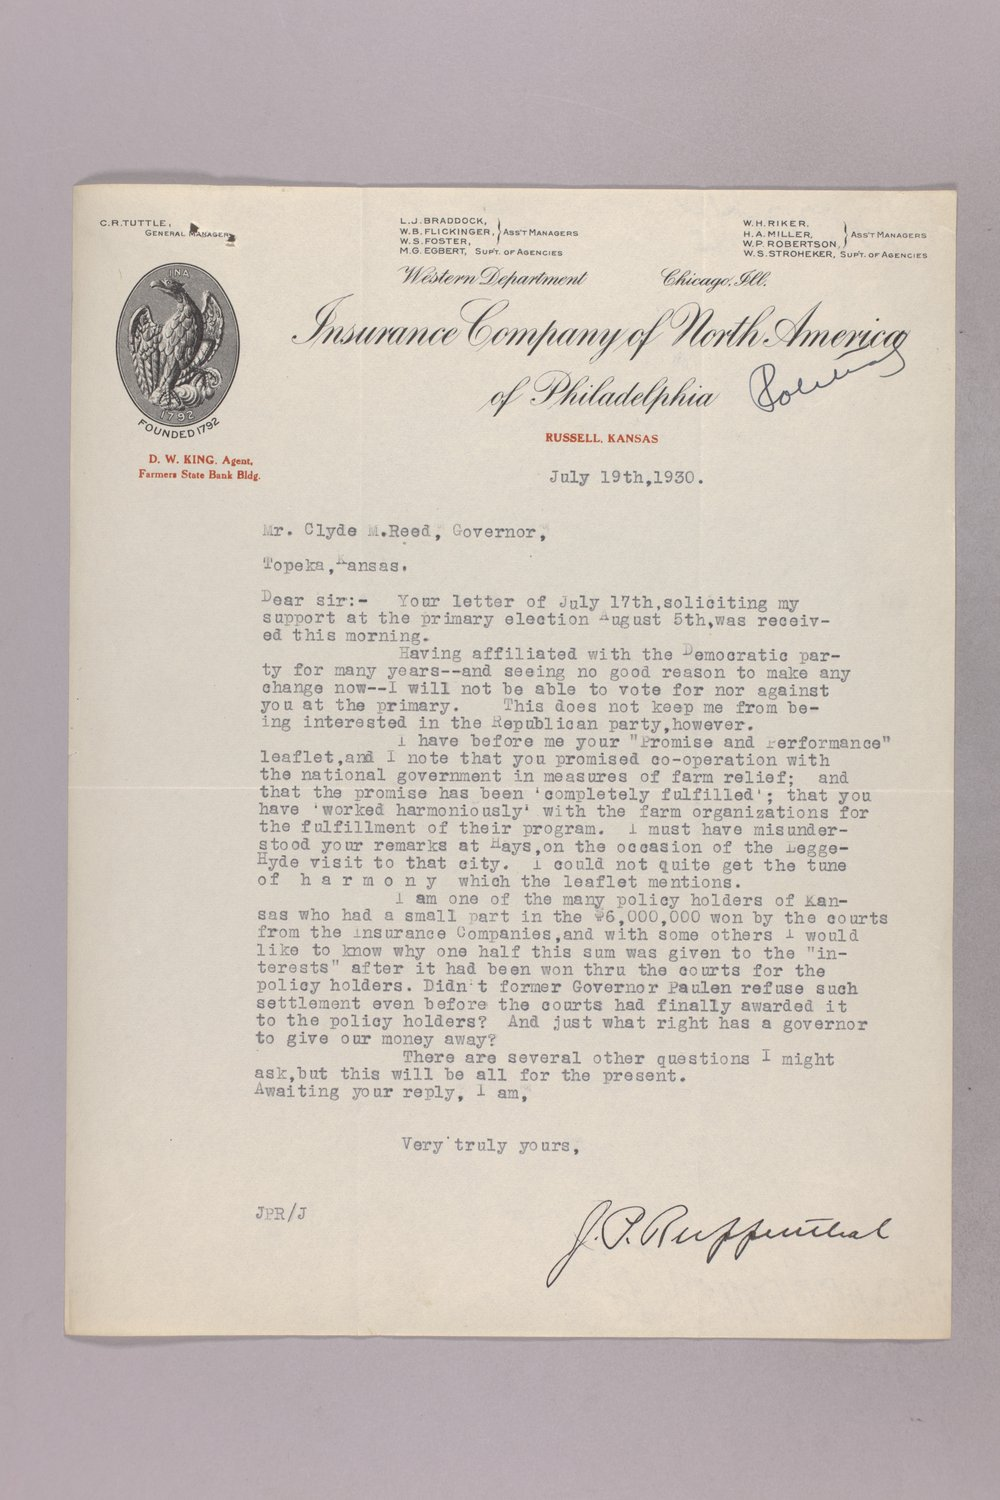 Governor Clyde M. Reed correspondence, hail insurance deduction - 4